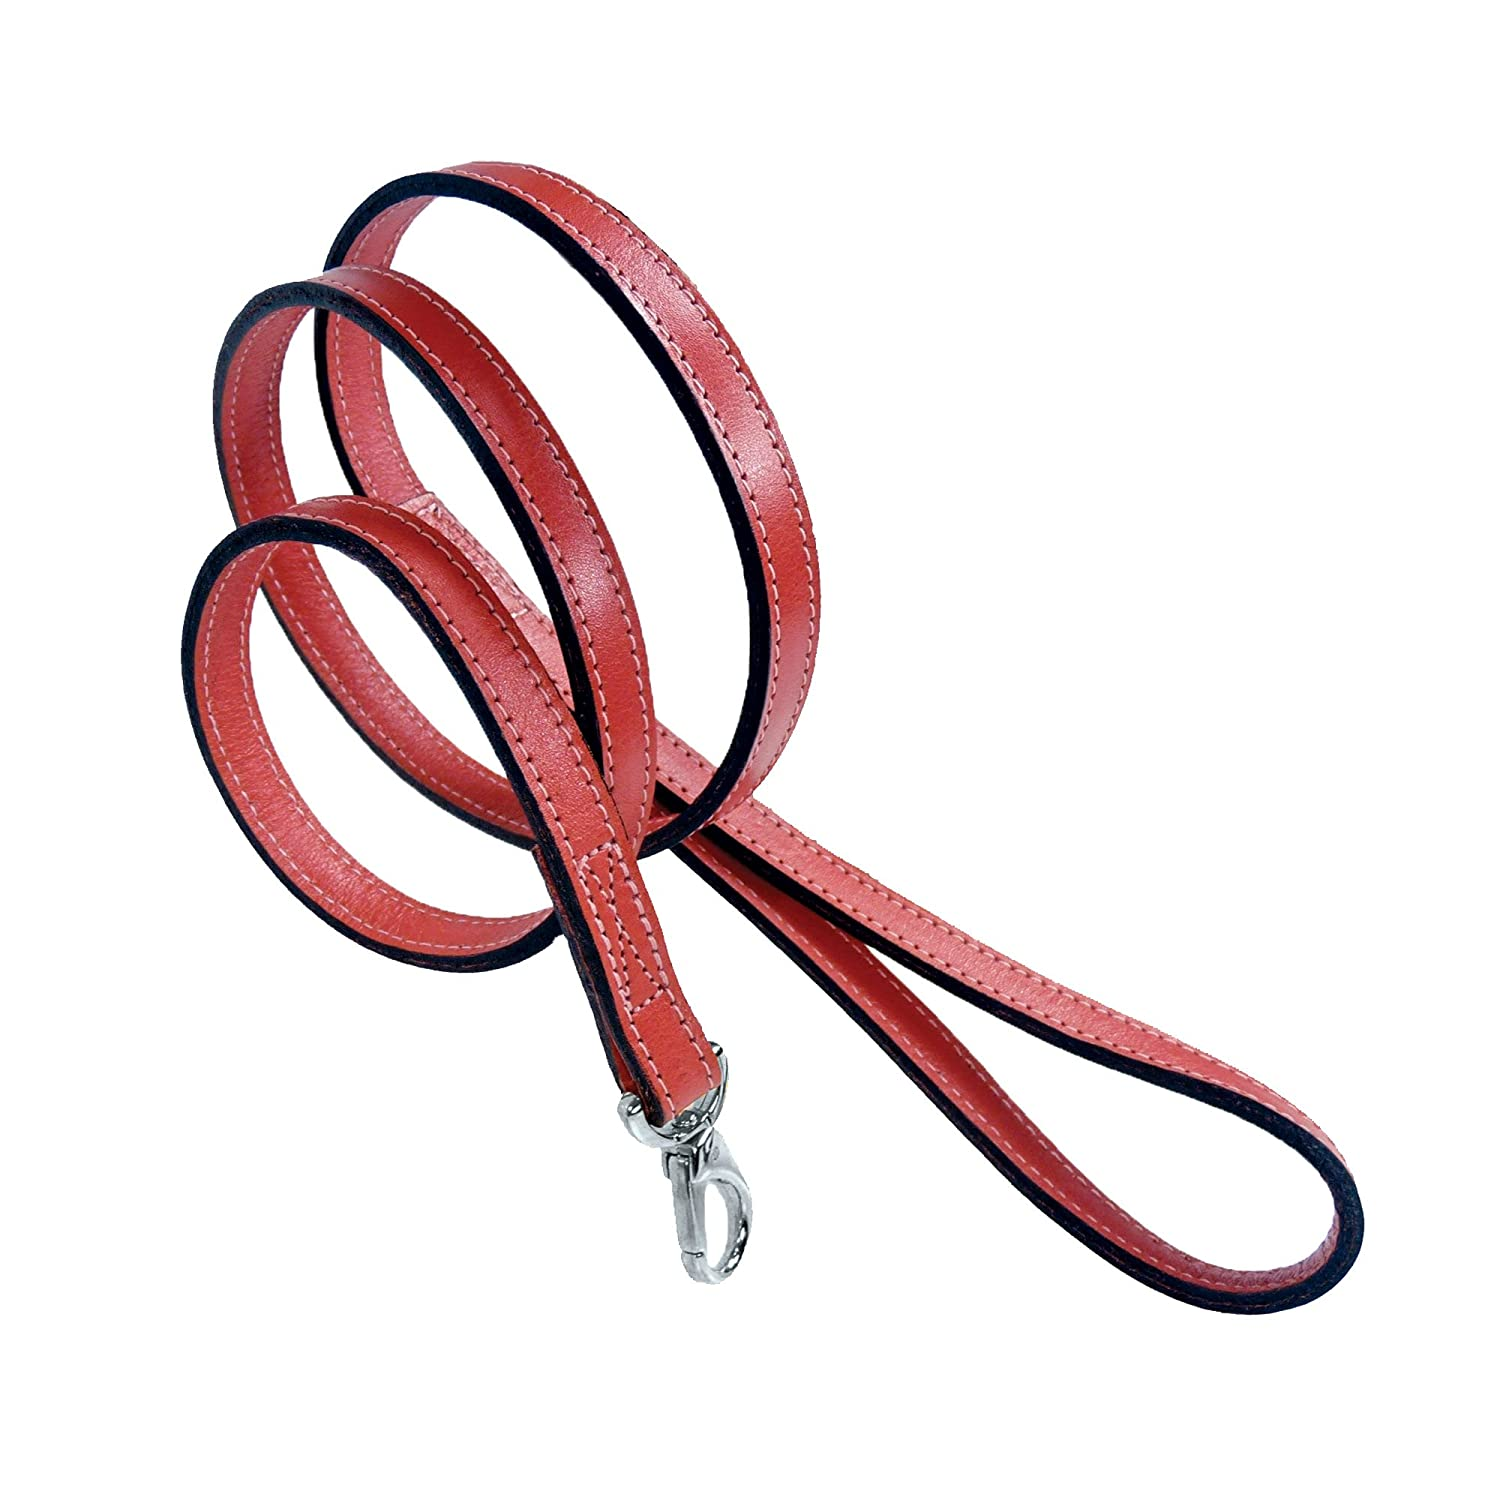 Hartman & pink 14369 Plain Nickel Plated Dog Lead, 1 2-Inch, Petal Pink